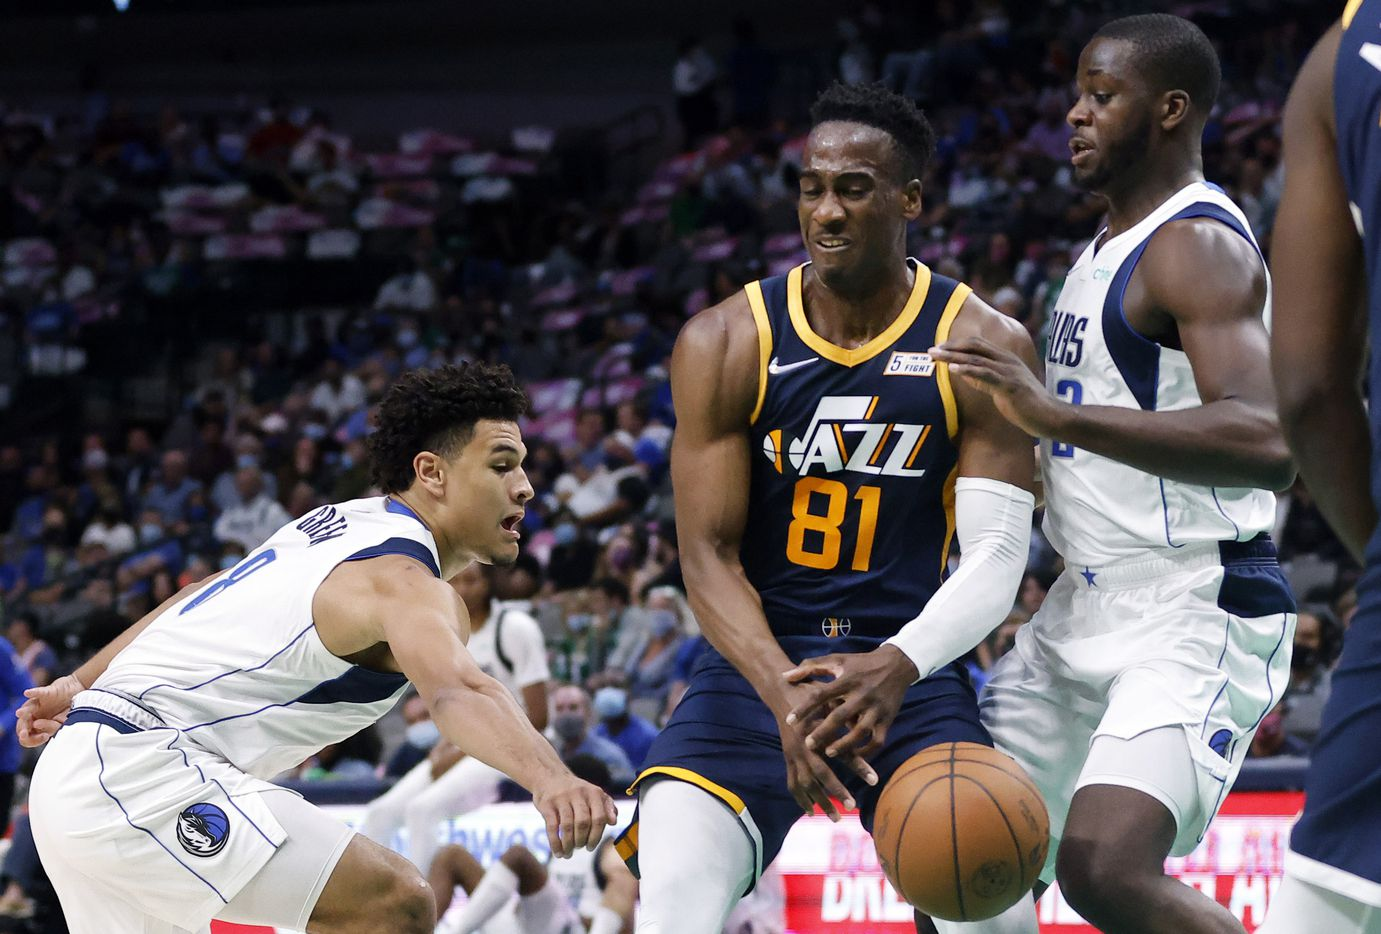 Dallas Mavericks guard Josh Green (8) and forward Eugene Omoruyi (2) strip the ball from Utah Jazz guard Miye Oni (81) during the second half at the American Airlines Center in Dallas, Wednesday, October 6, 2021. The Mavericks defeated the Jazz, 111-101. (Tom Fox/The Dallas Morning News)